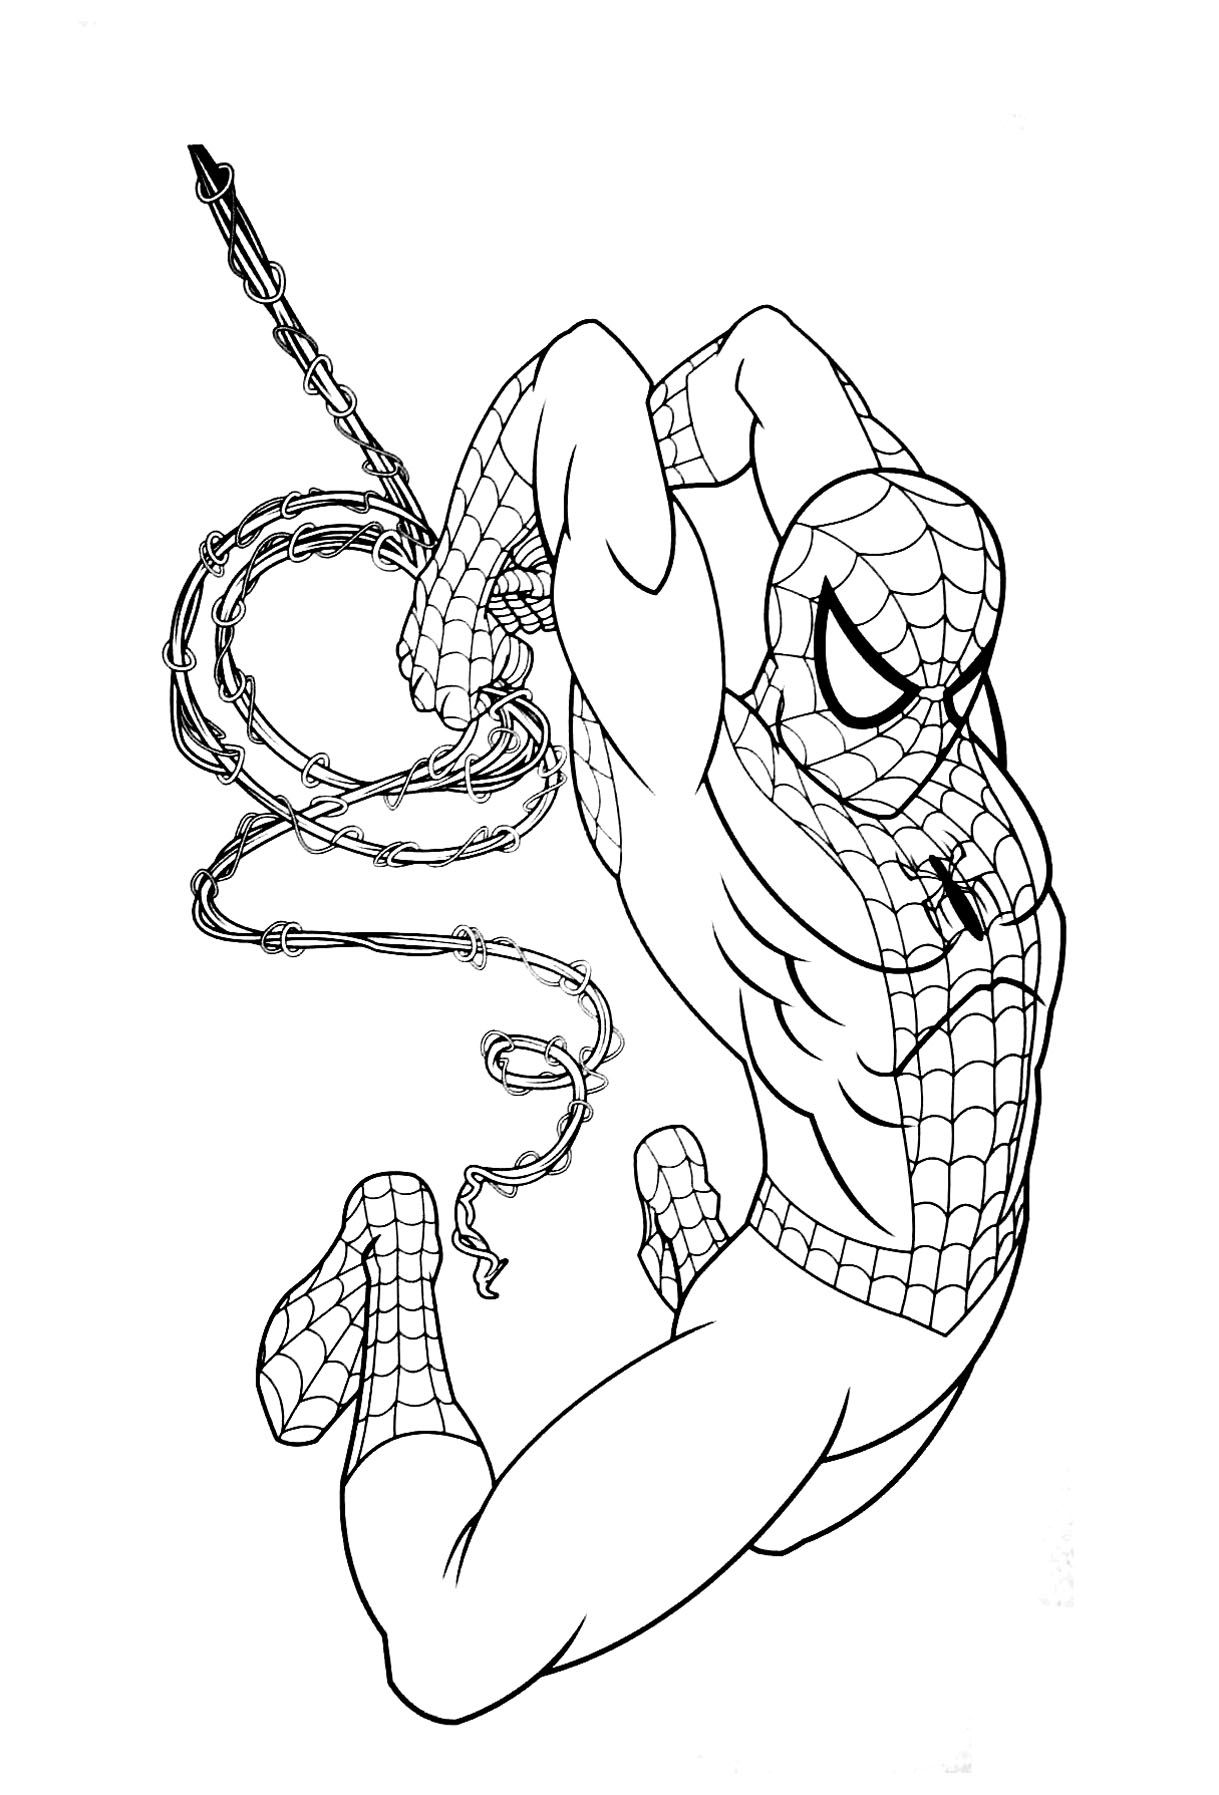 Free Printable Spiderman Coloring Pages For Kids Avengers Coloring Pages Superhero Coloring Superhero Coloring Pages